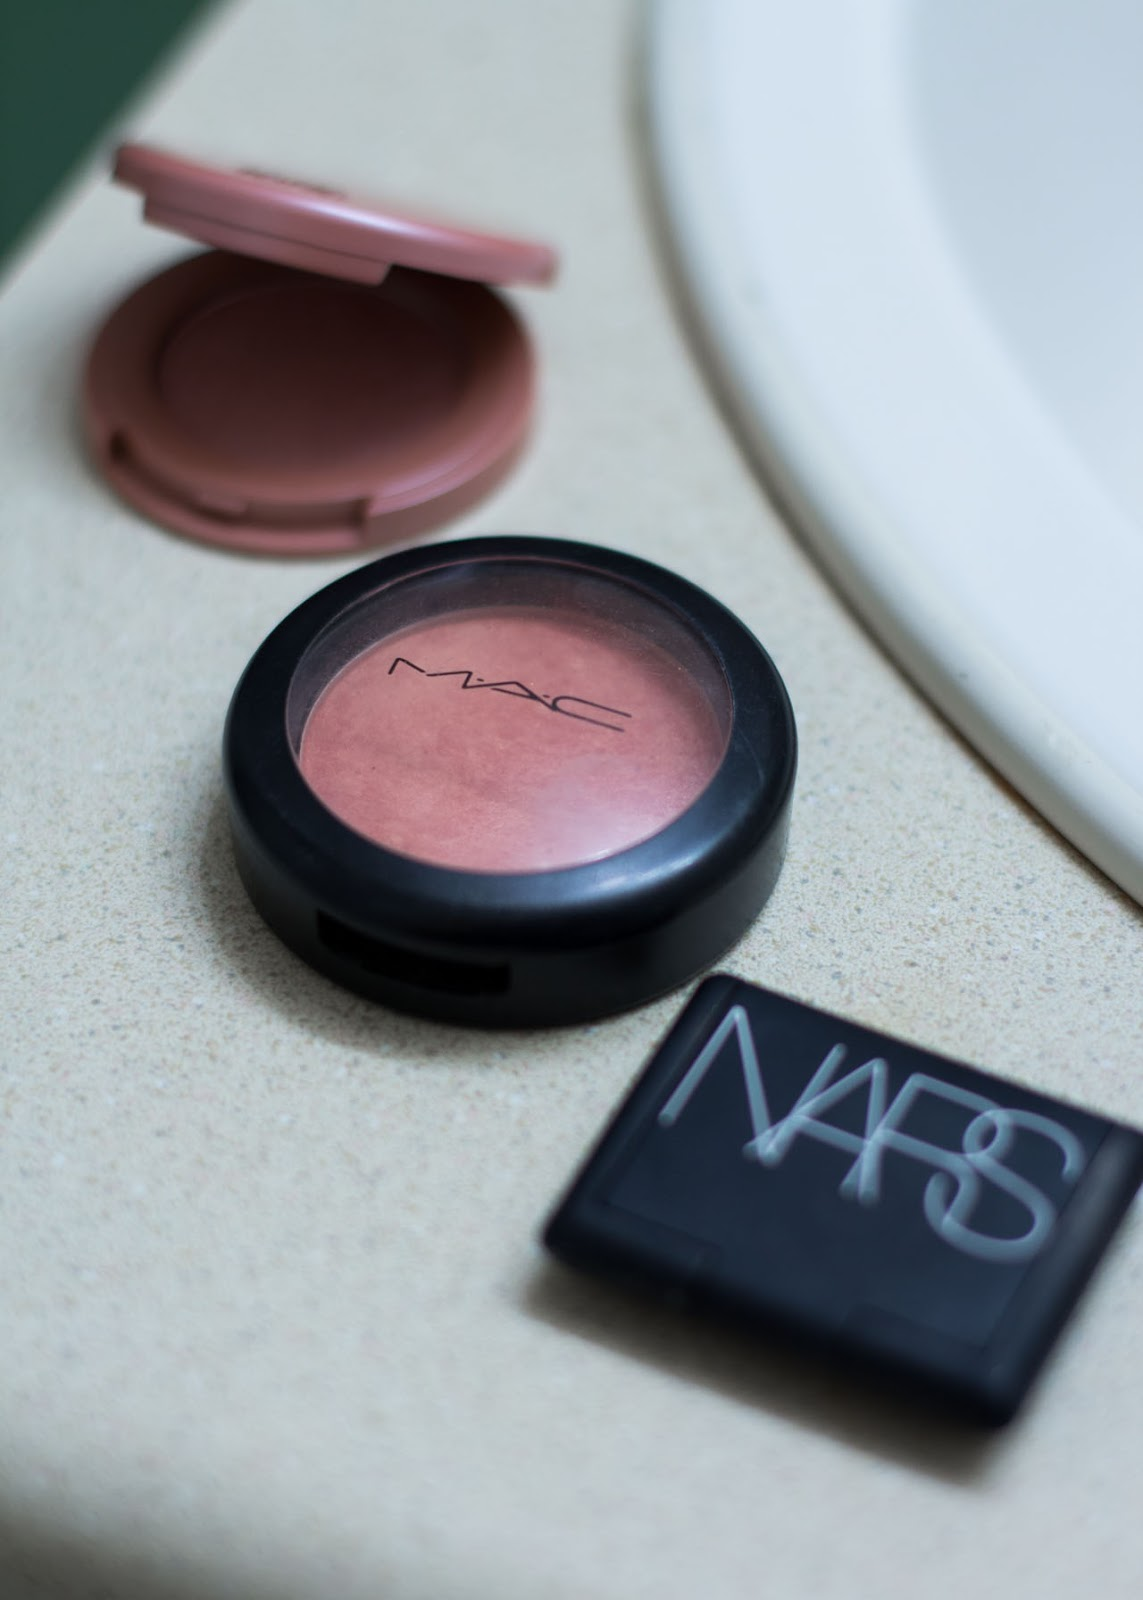 Fall Winter make-up routine - Favorite beauty products - blush - Nars - tarte - M.A.C